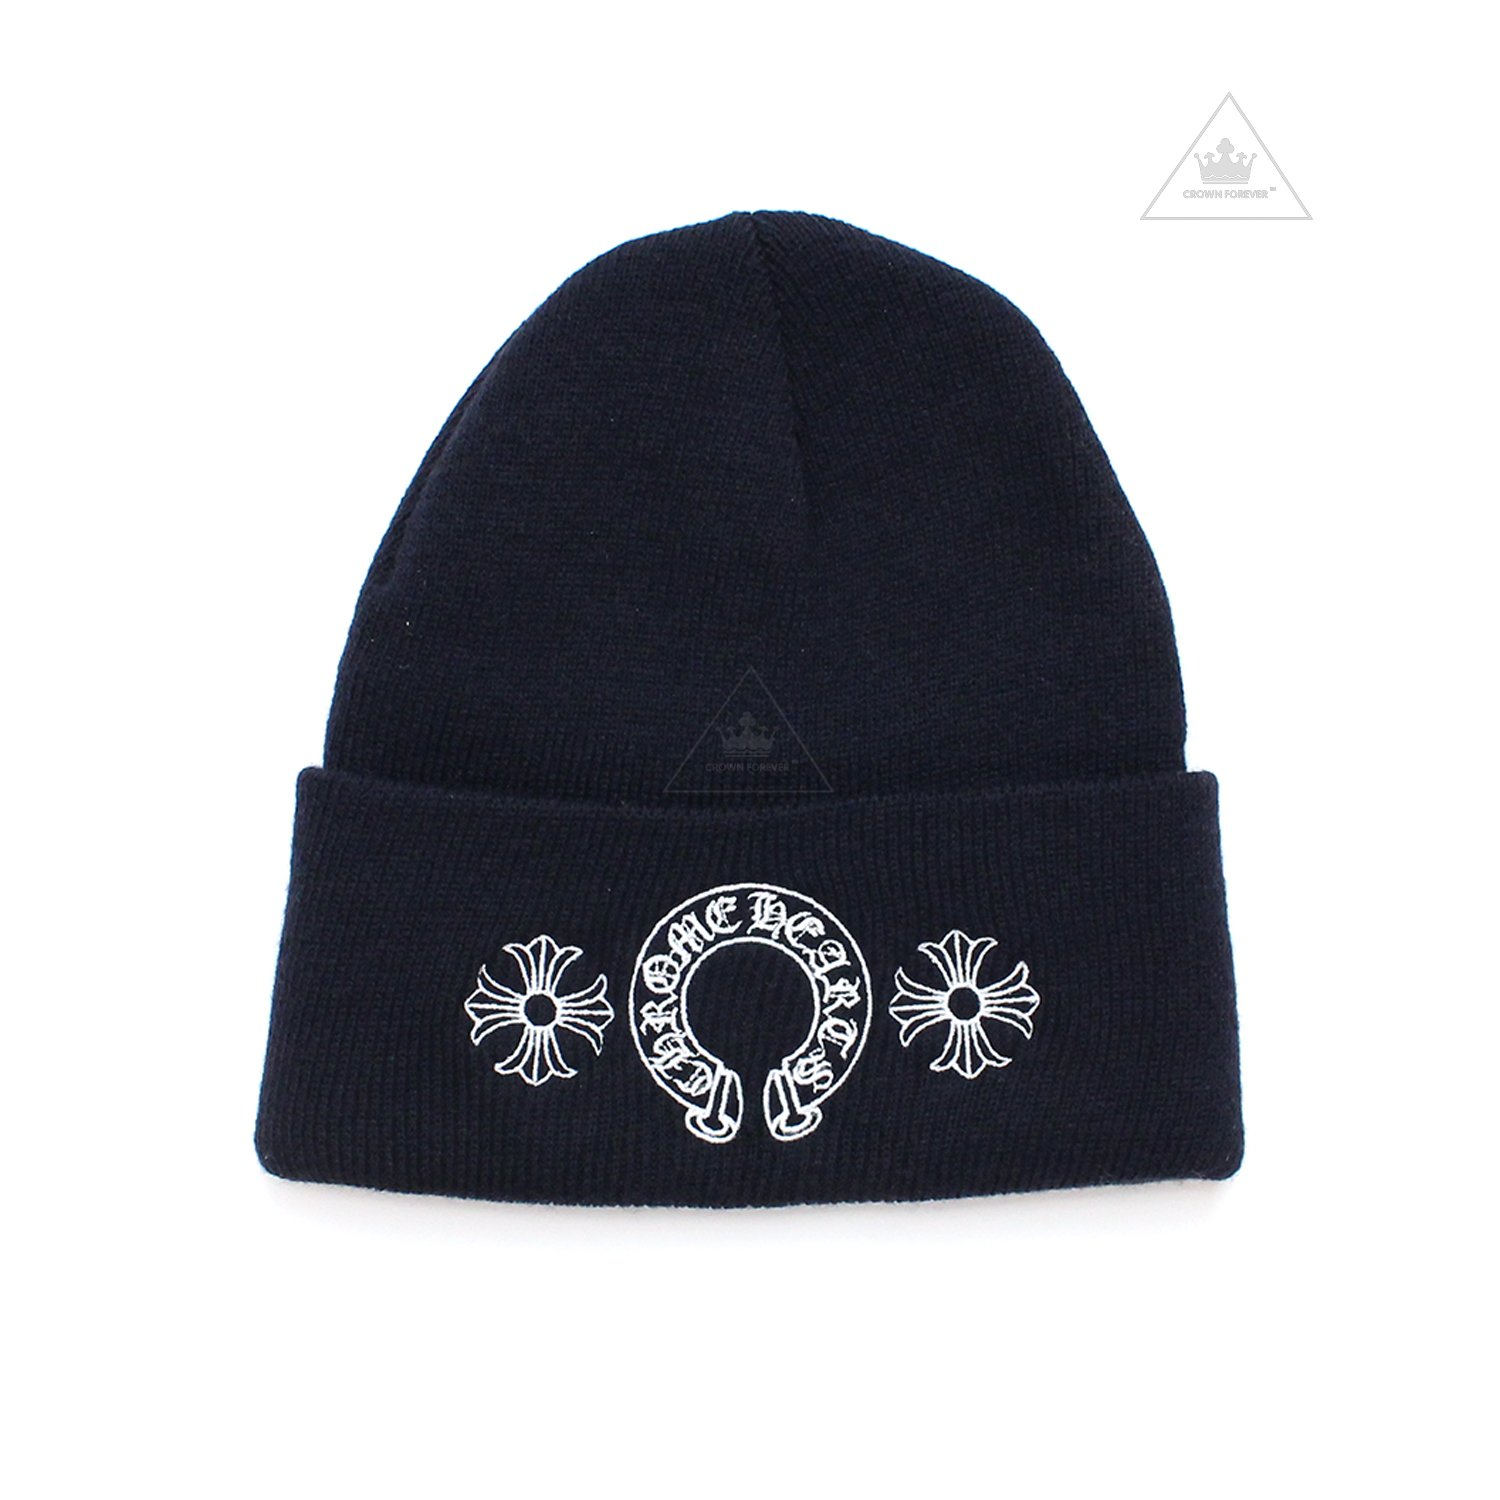 CH Horseshoe Plus Beanie Navy by CHROME HEARTS, available on crownforeverla.com for $250 Kylie Jenner Outerwear SIMILAR PRODUCT